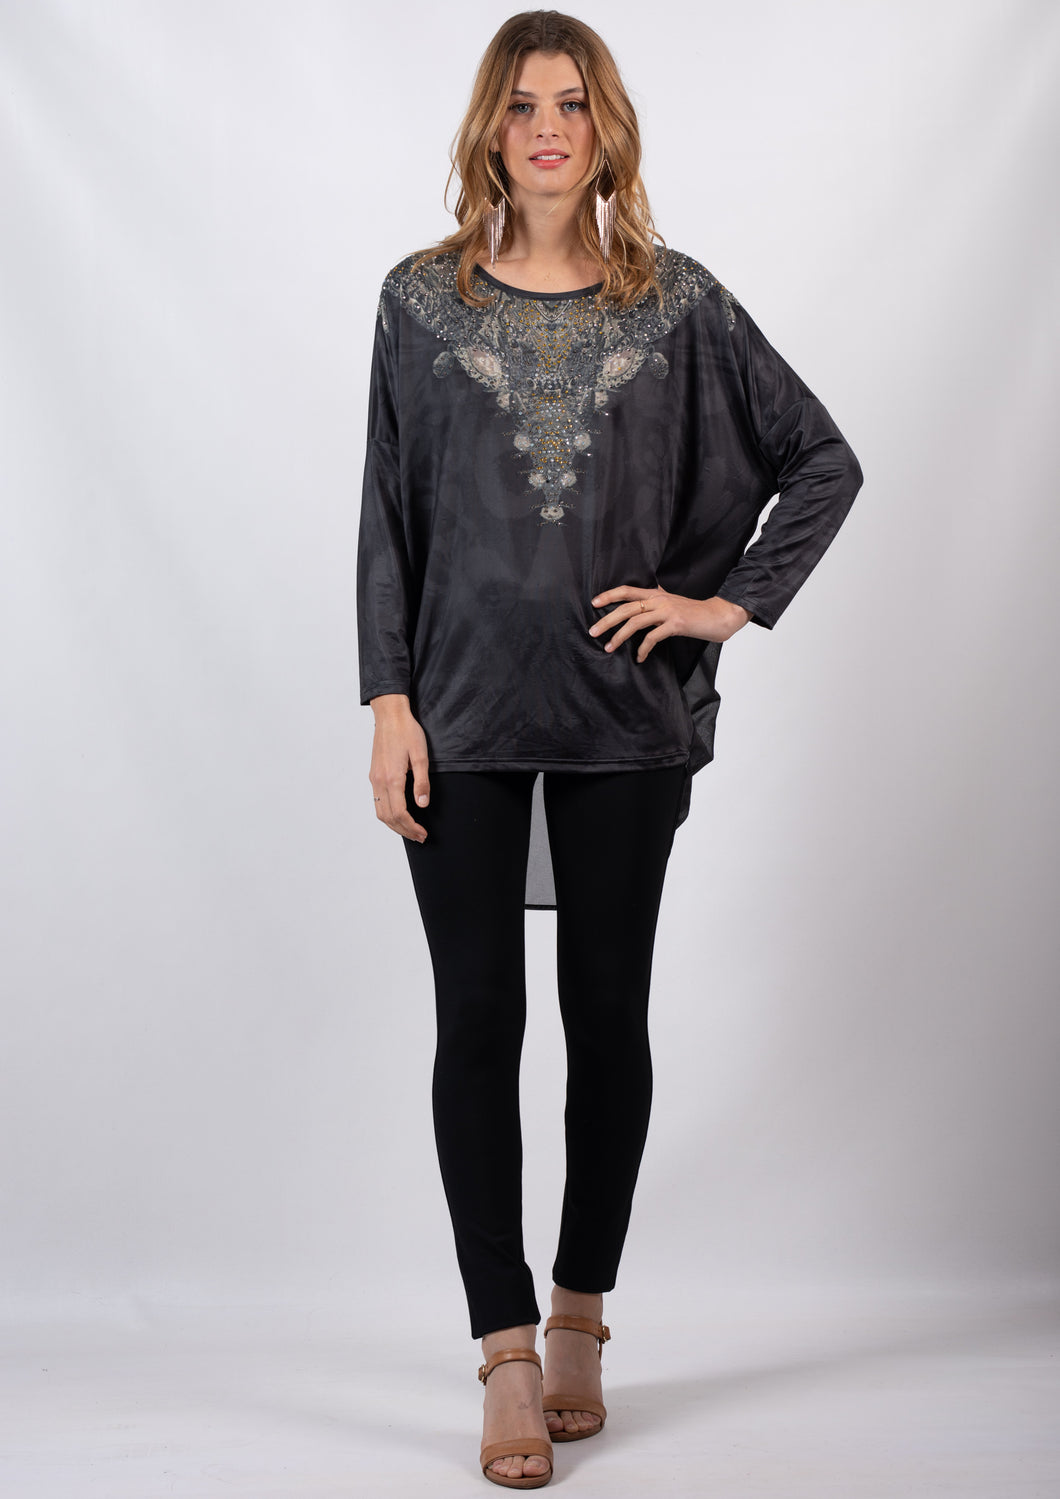 YW00118-2SS Embellished Long Sleeve Top (Pack) New Arrival